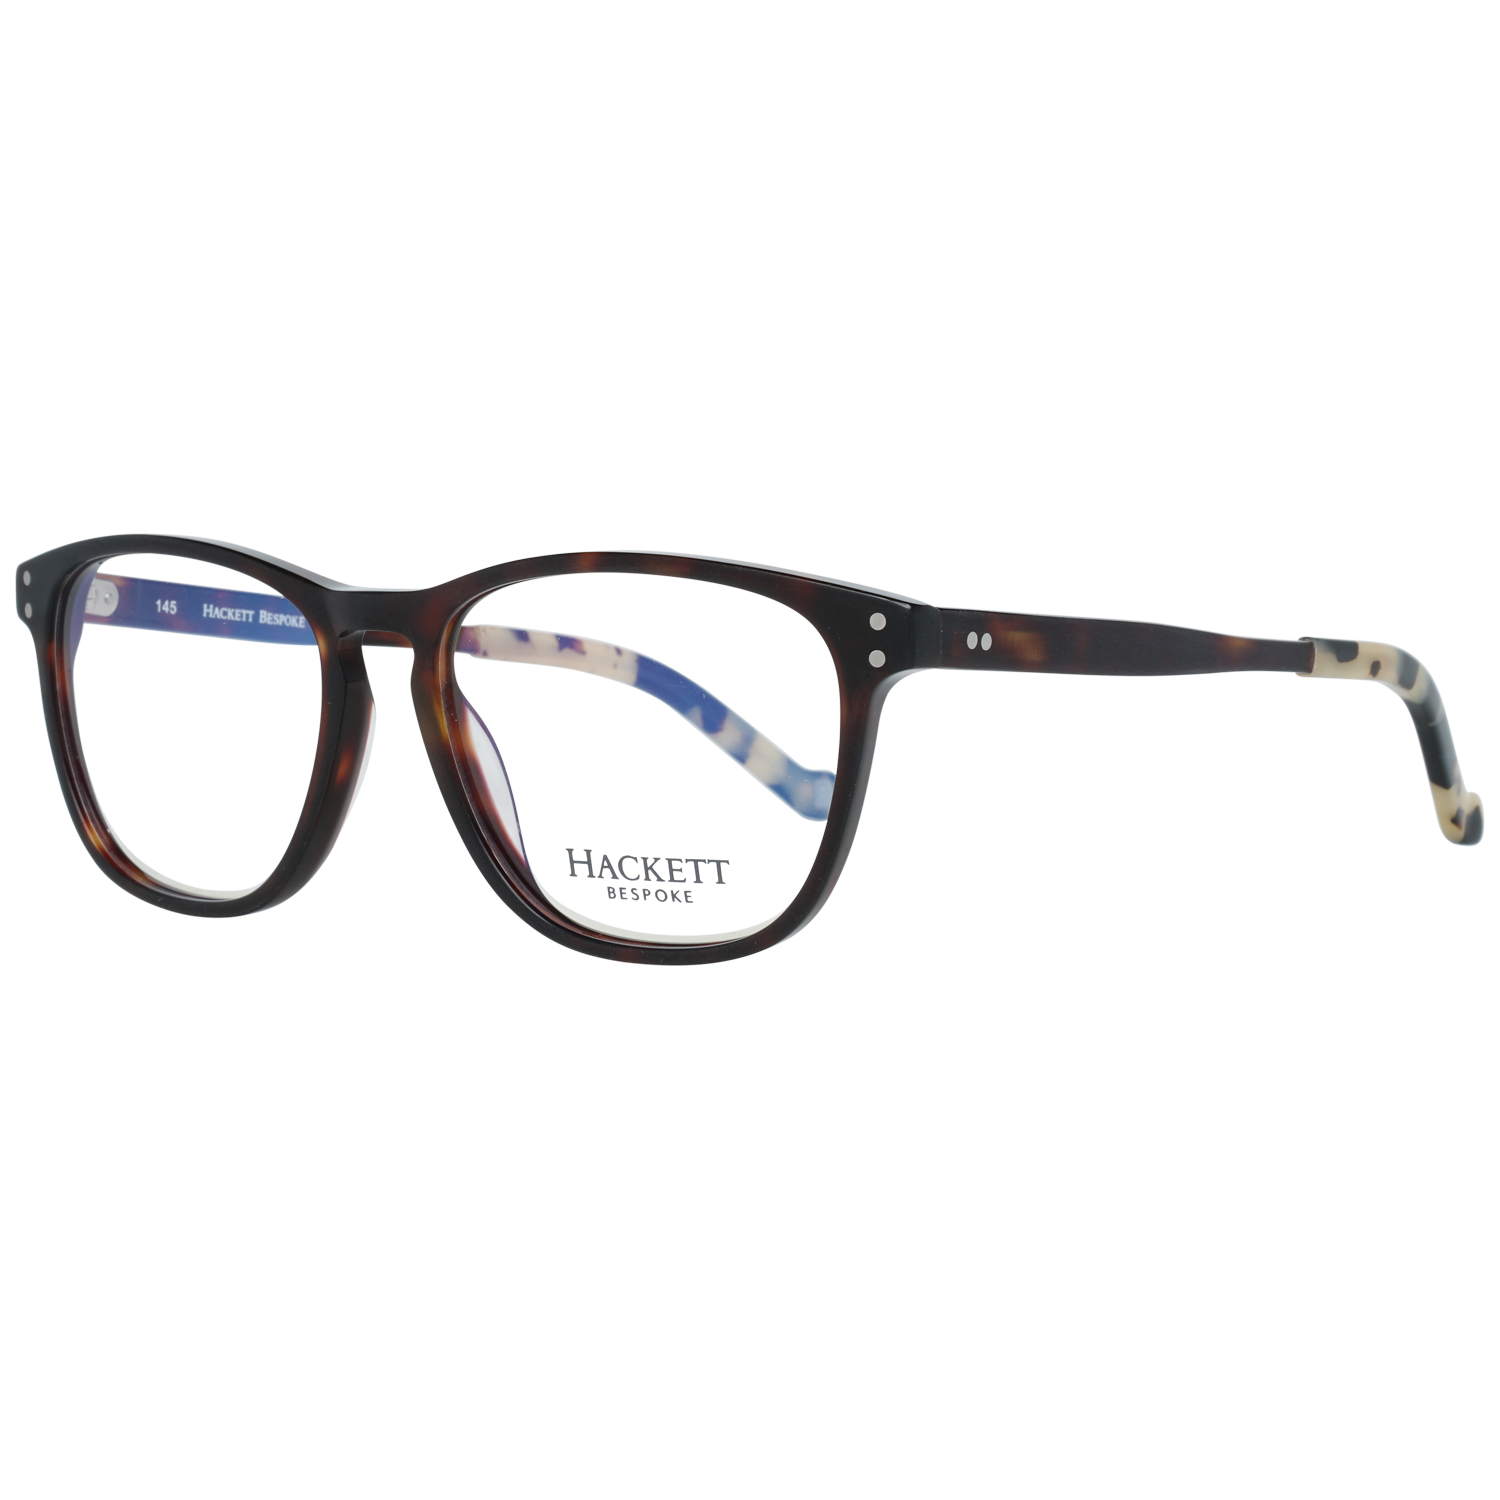 Hackett Bespoke Optical Frame HEB220 143 53 Brown